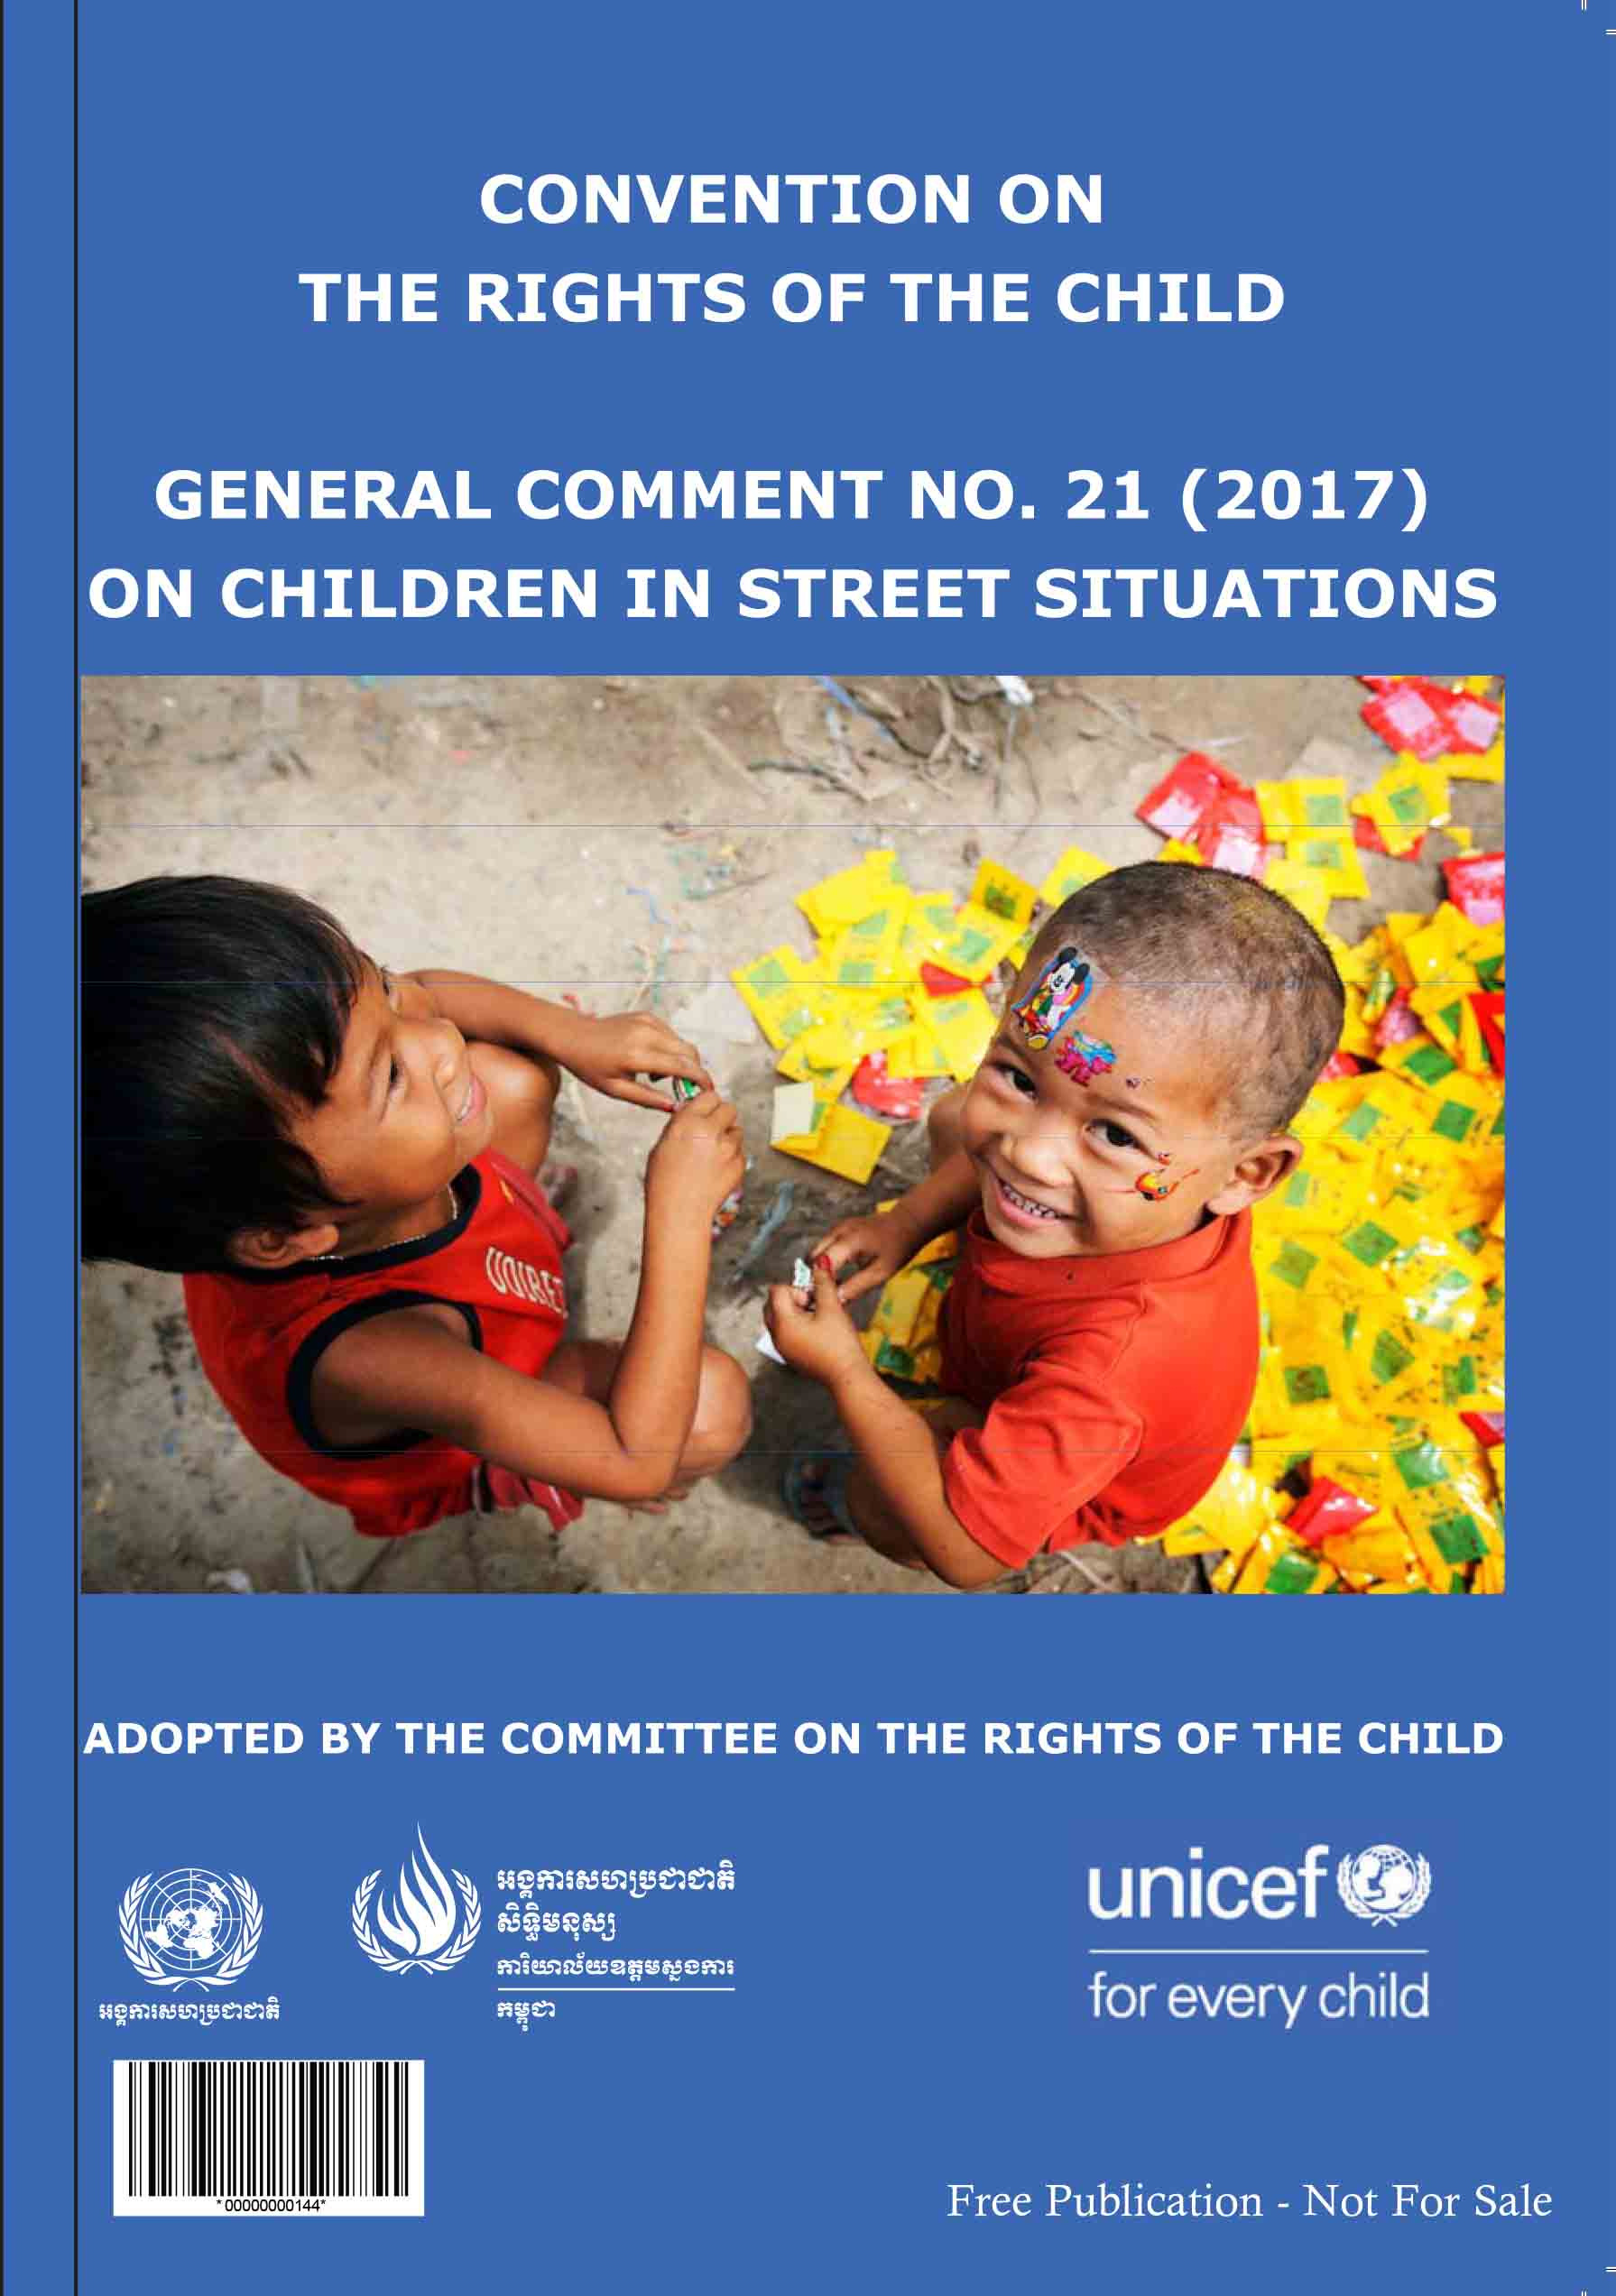 General comment No. 21 (2017) on children in street situations